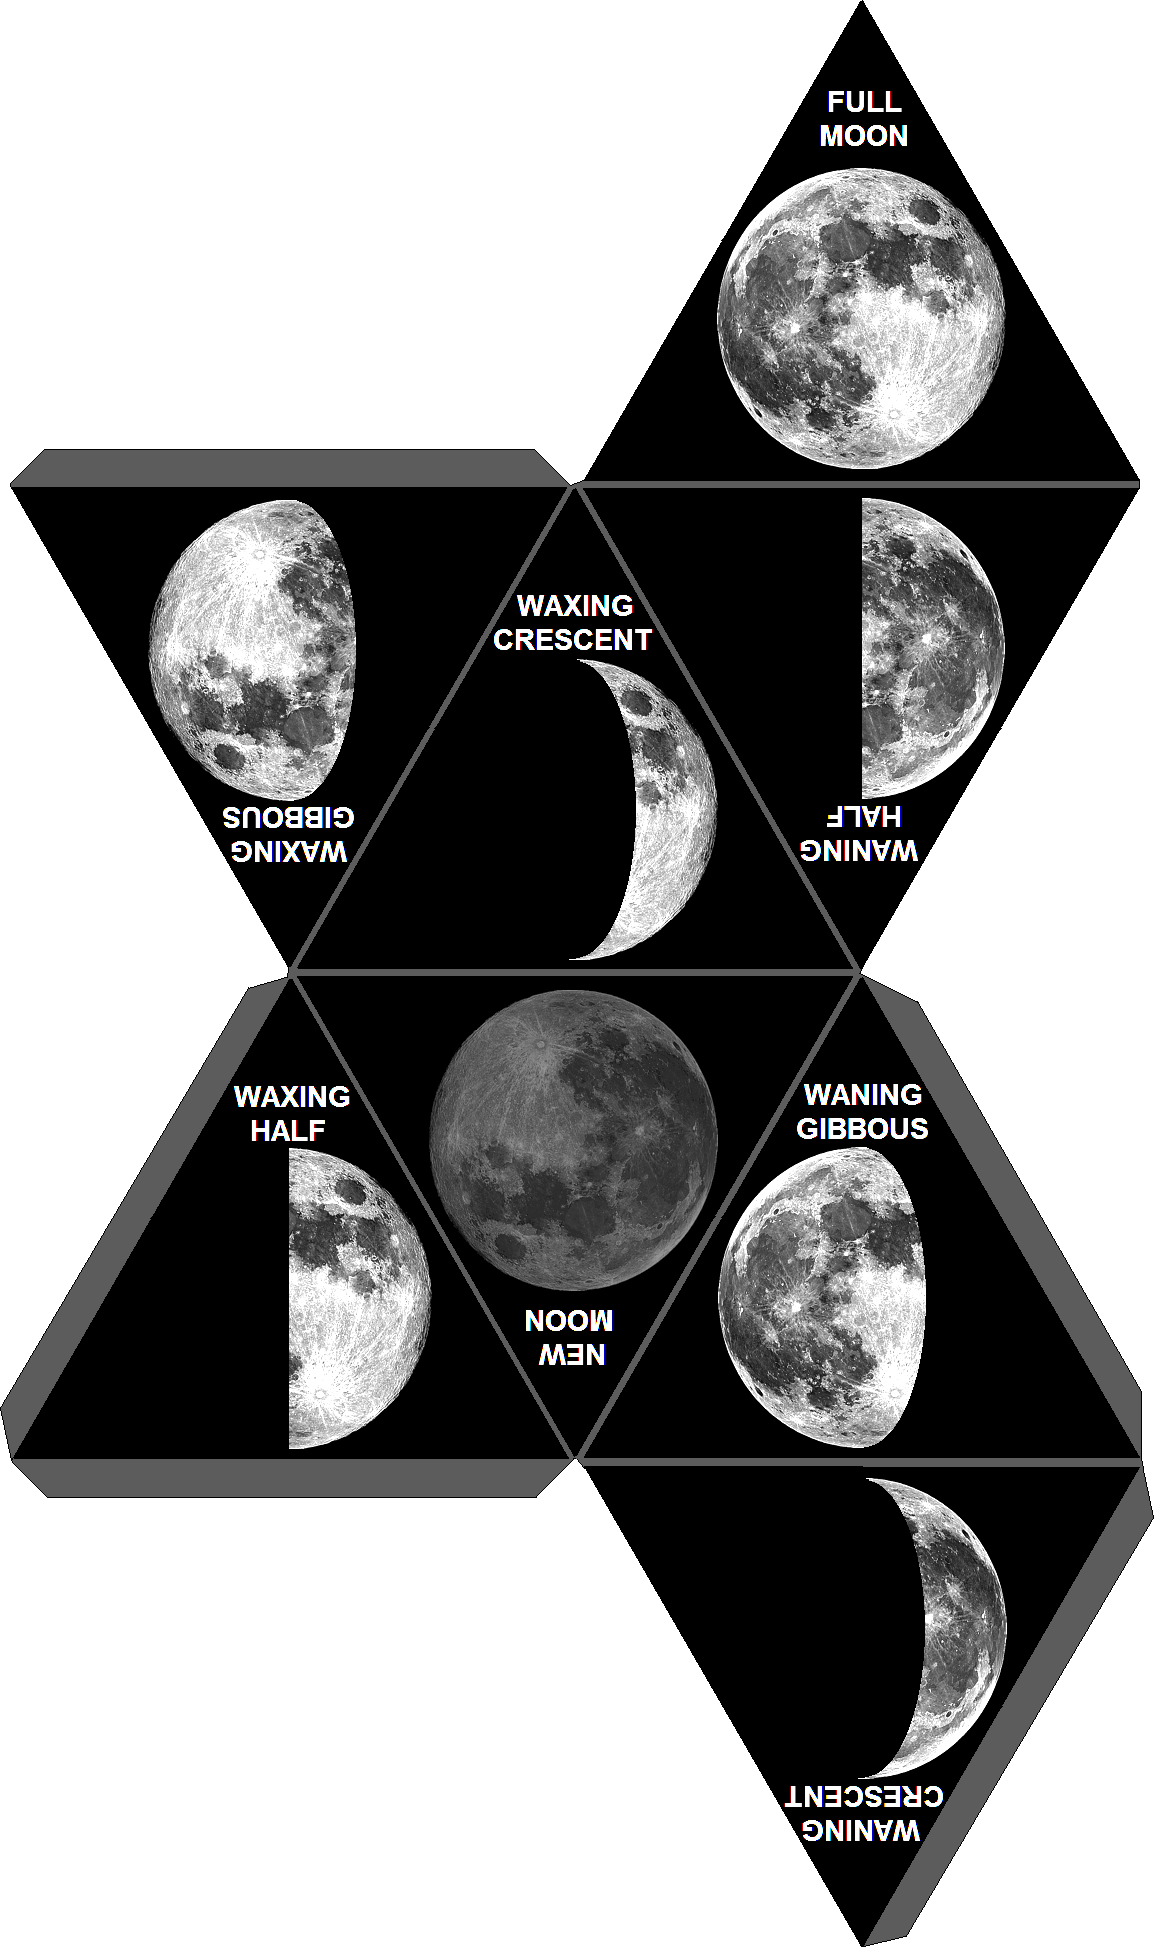 8 Phases Of The Moon In Order